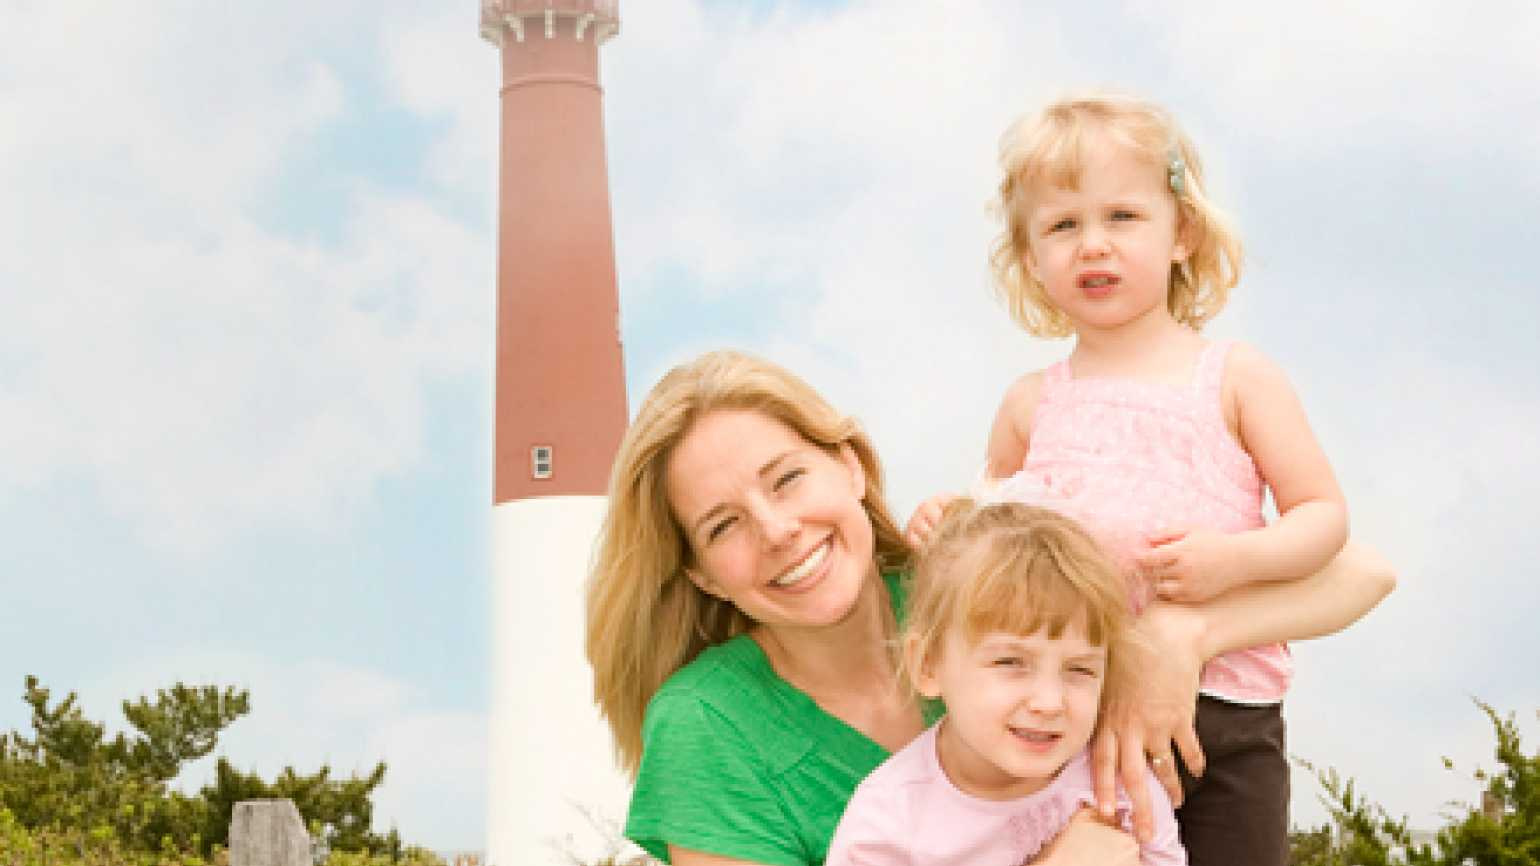 Every trip to the lighthouse is an inspiring story in the making